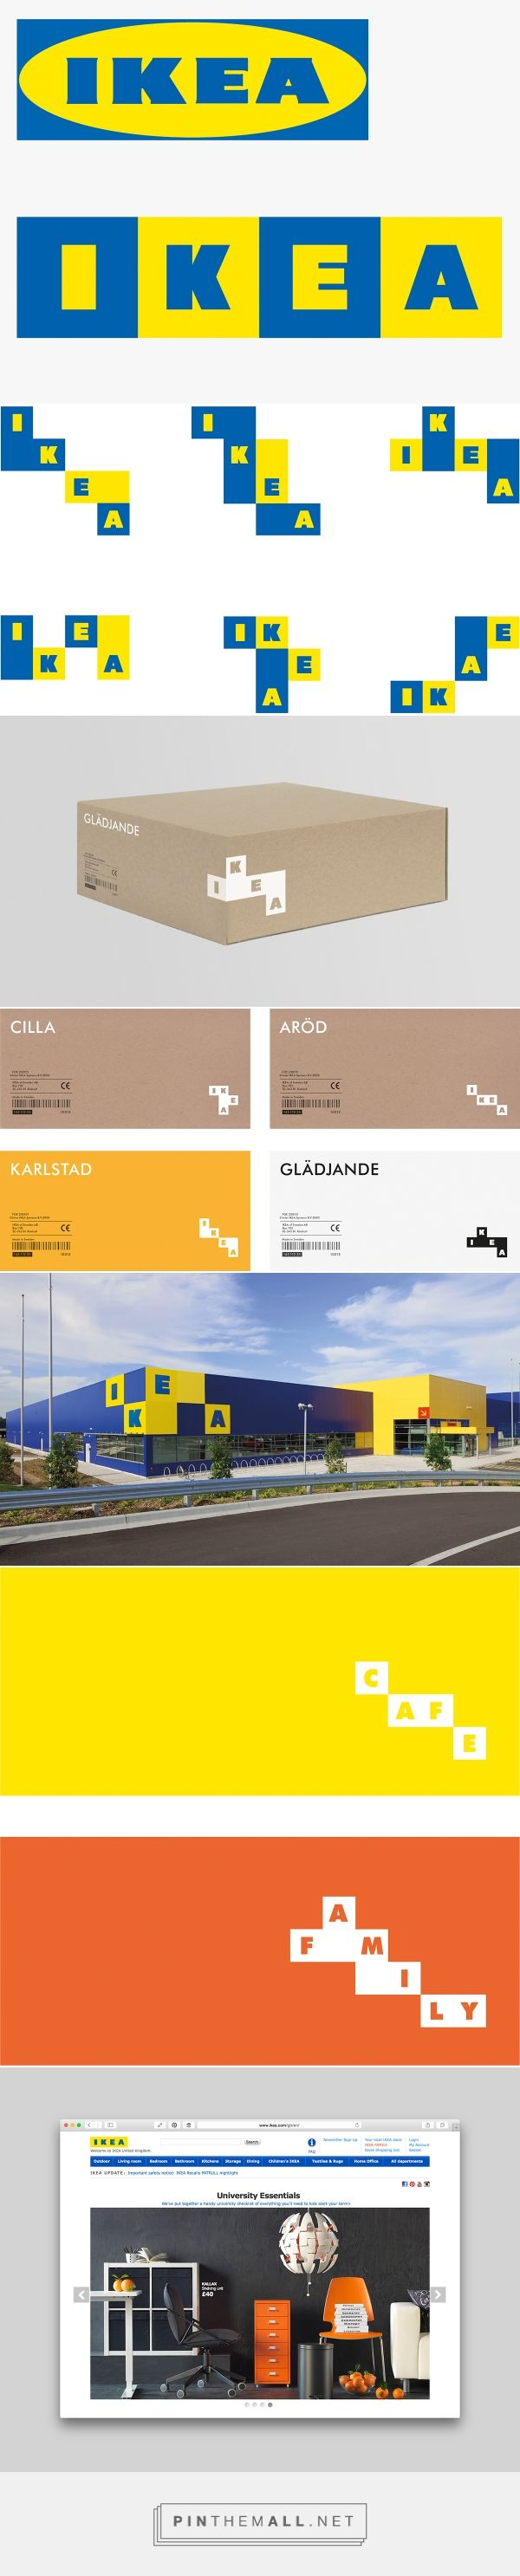 Rethinking IKEA's logo on Behance - created via https://pinthemall.net